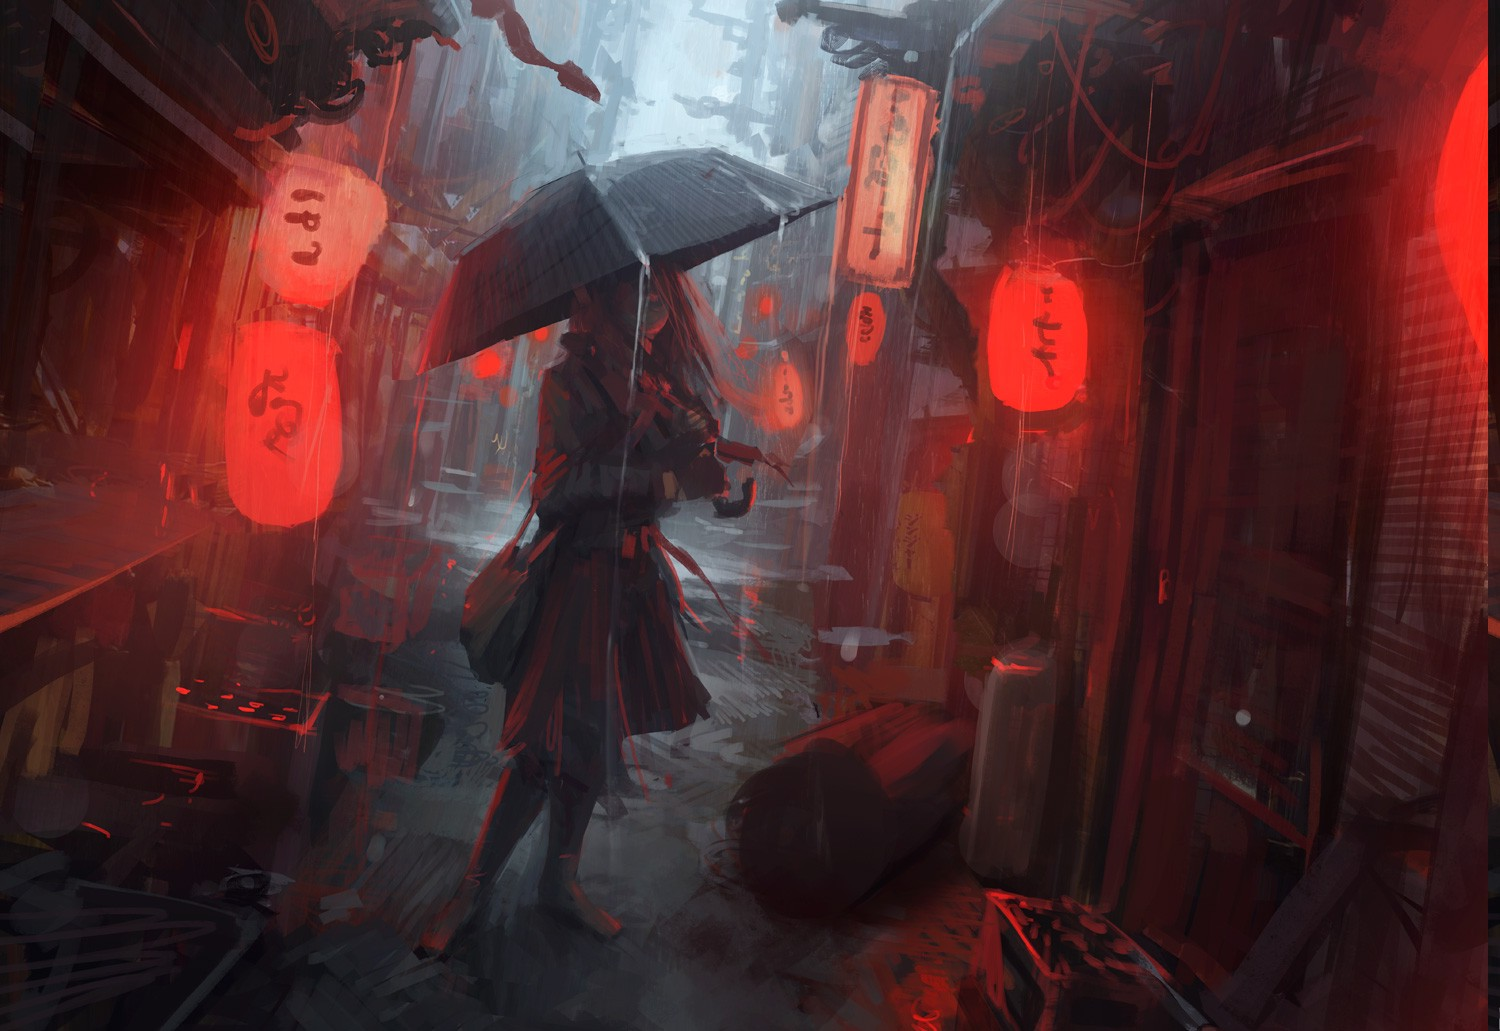 Wallpaper Of Girl Standing In Rain Andree Wallin Digital Art Concept Art Urban Wallpapers